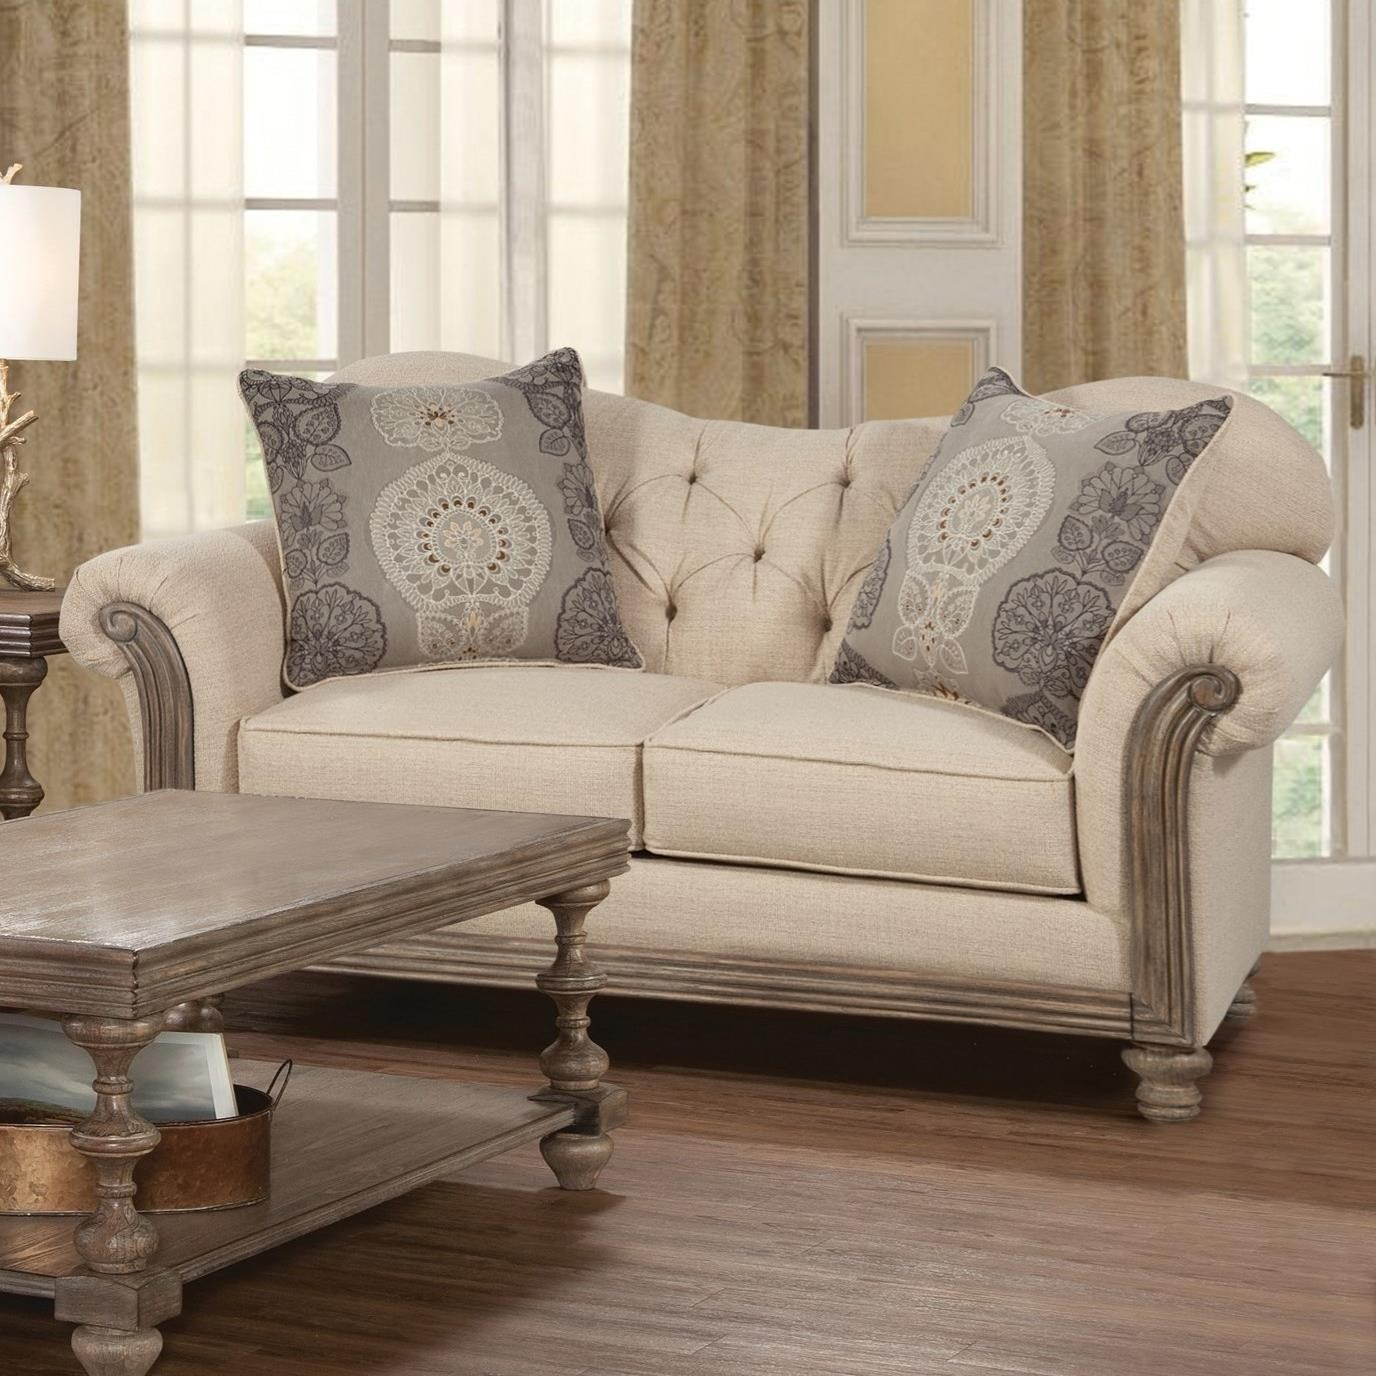 Serta Upholstery By Hughes Furniture 8725 Traditional Stationary